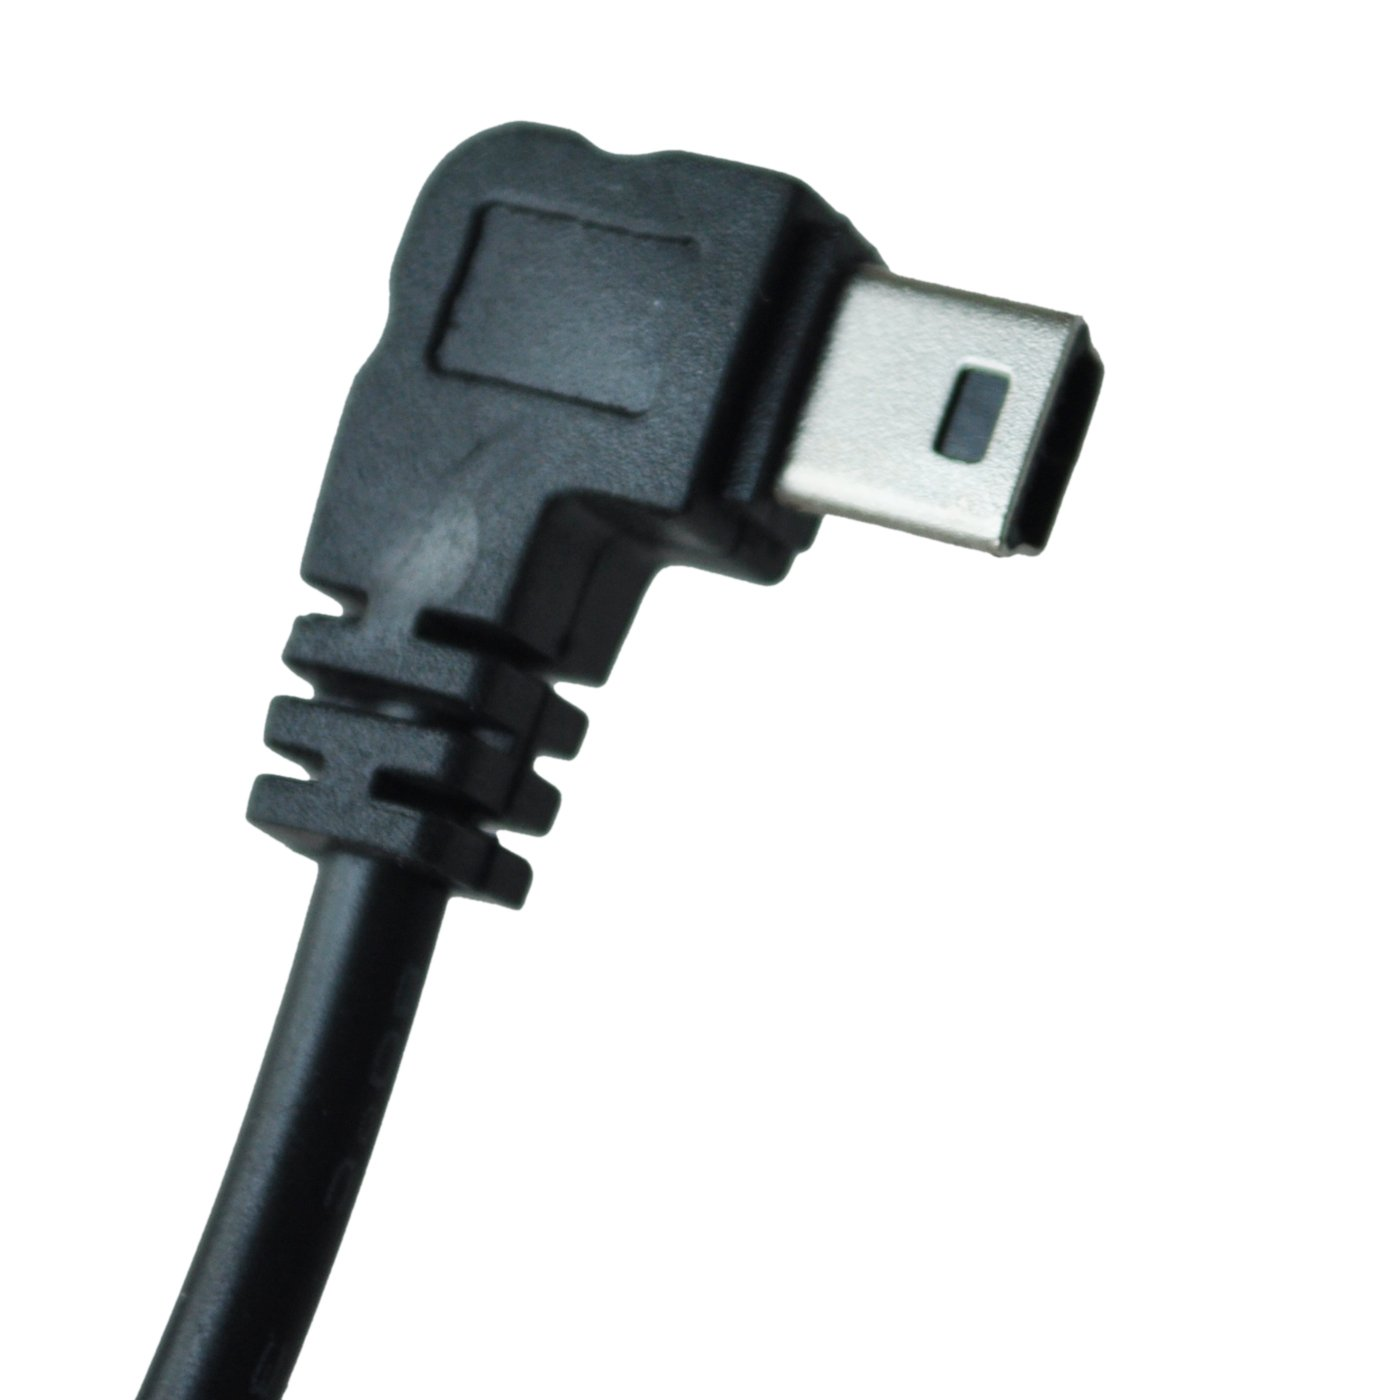 SODIAL DC converter to convert 12V to 5V,3A Bent Mini USB Power Adapter vs Fuse /& amp; 3M Cable R